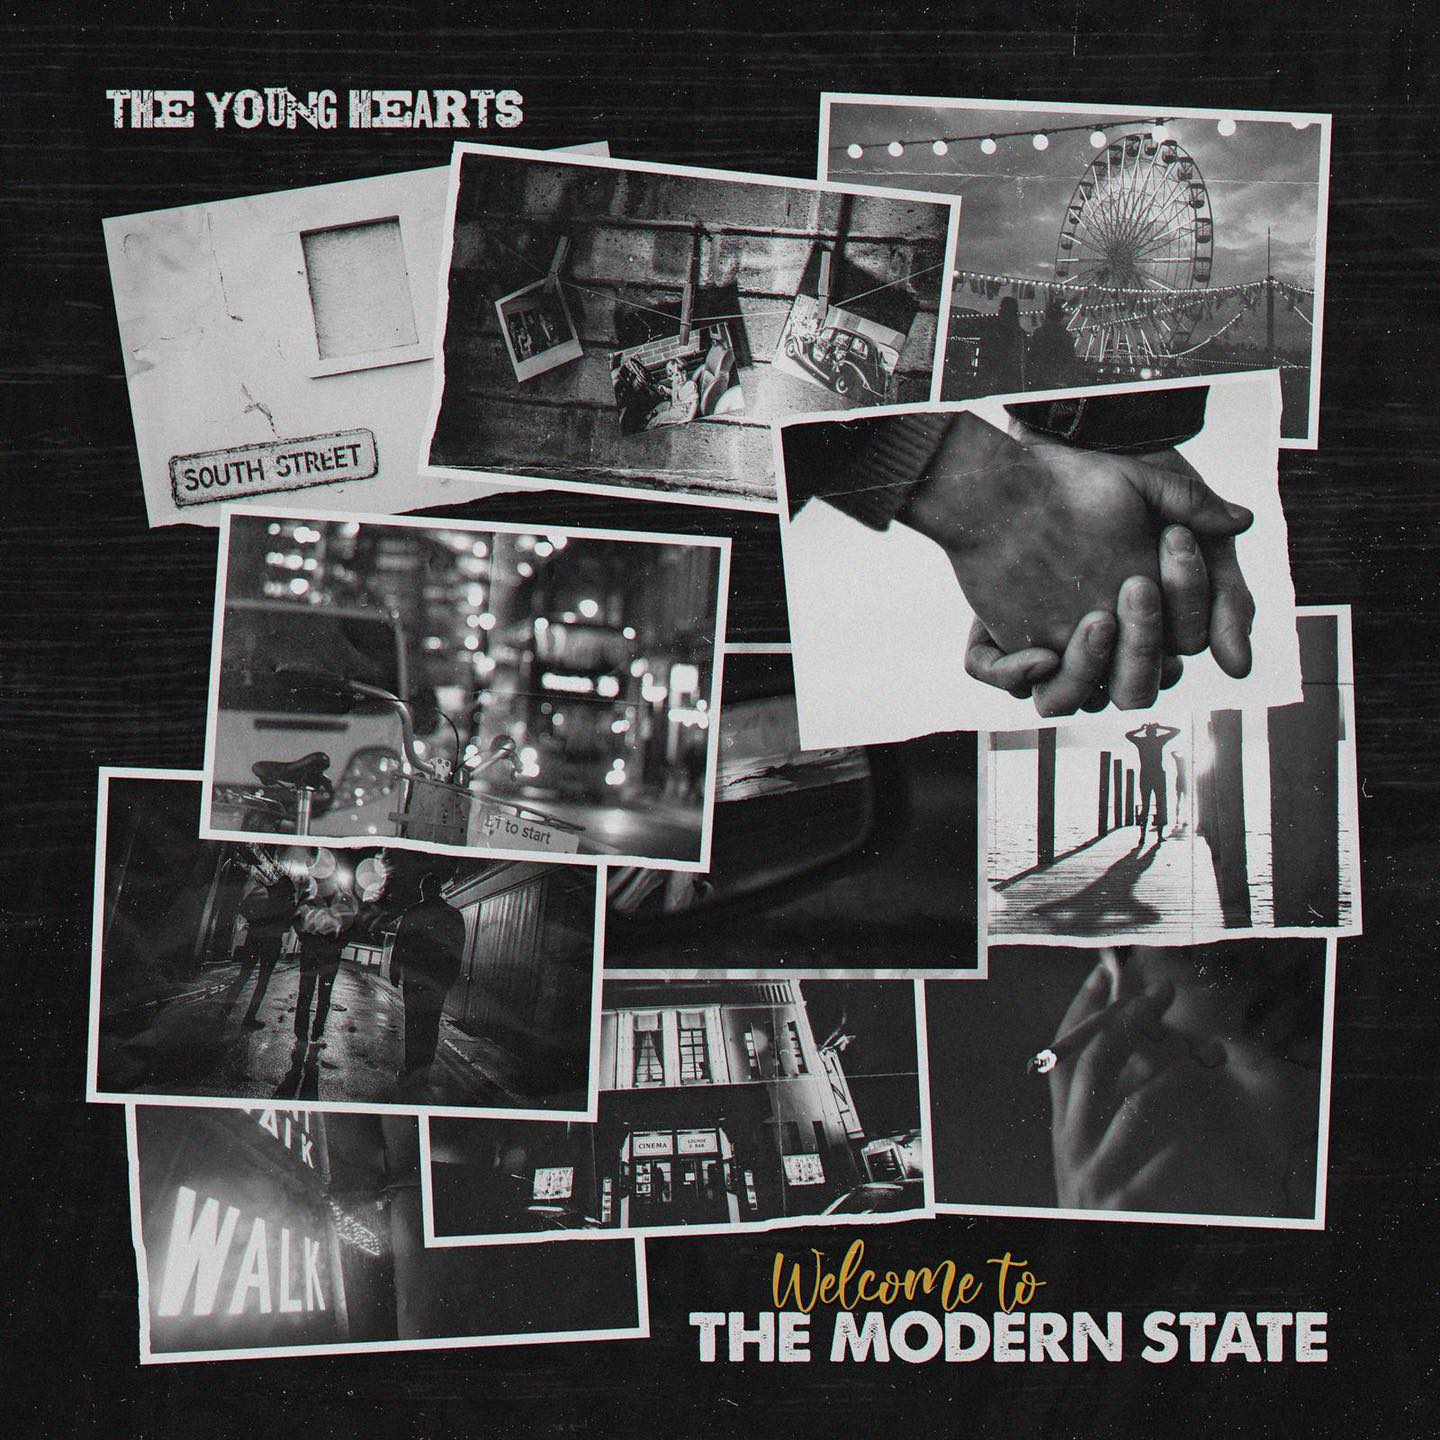 The Modern State album art